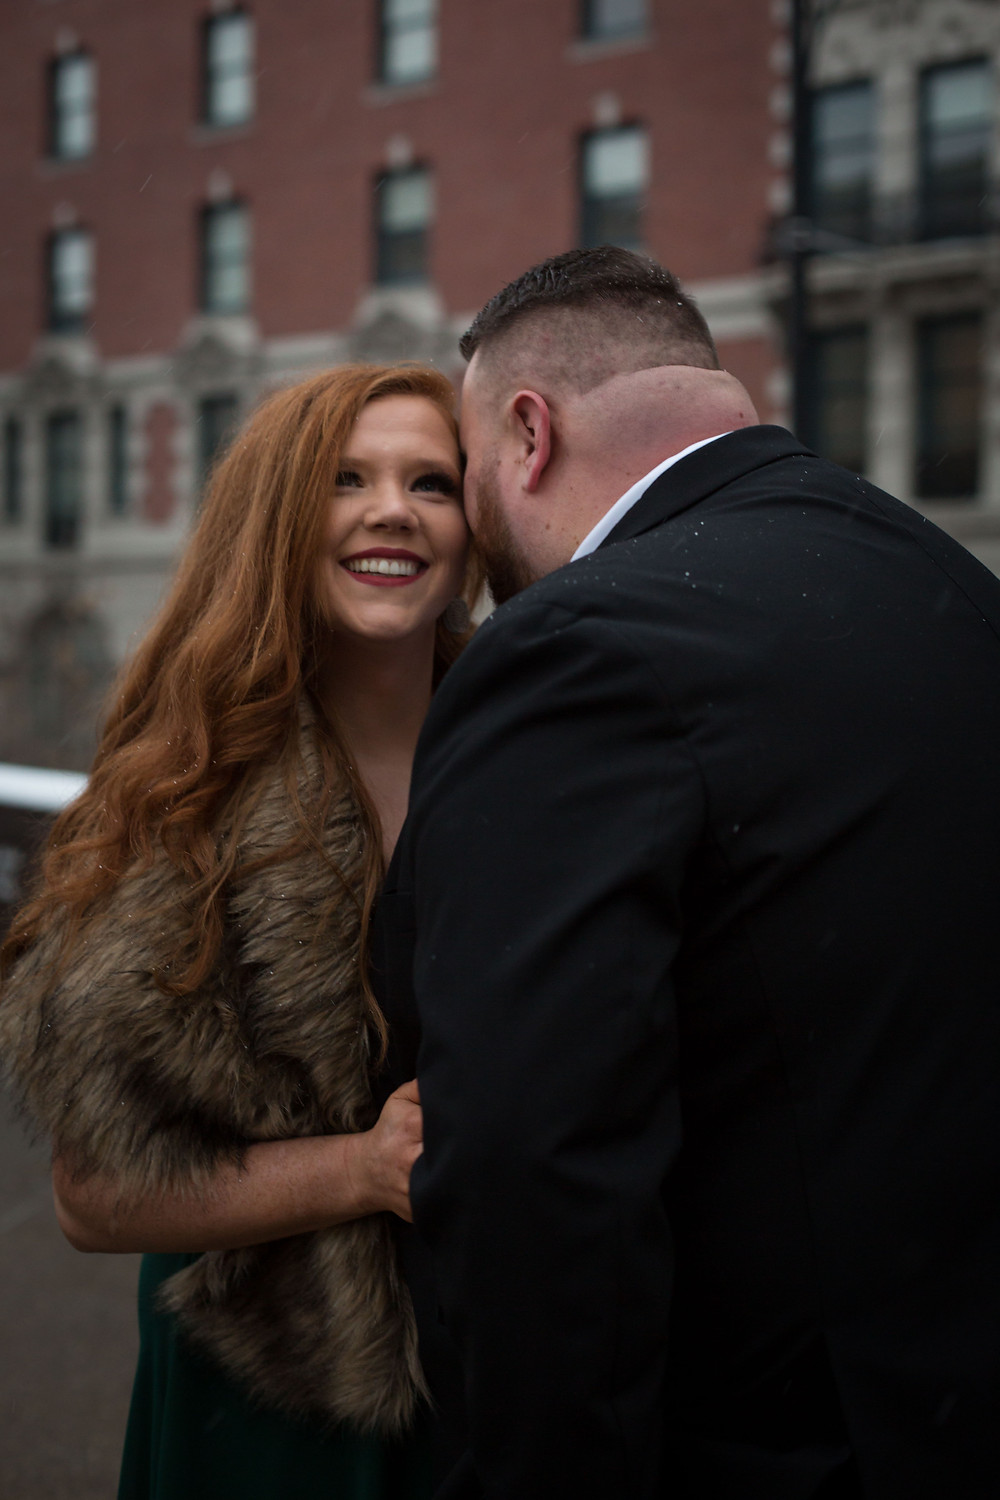 downtown Buffalo snowy winter formal engagement photo shoot